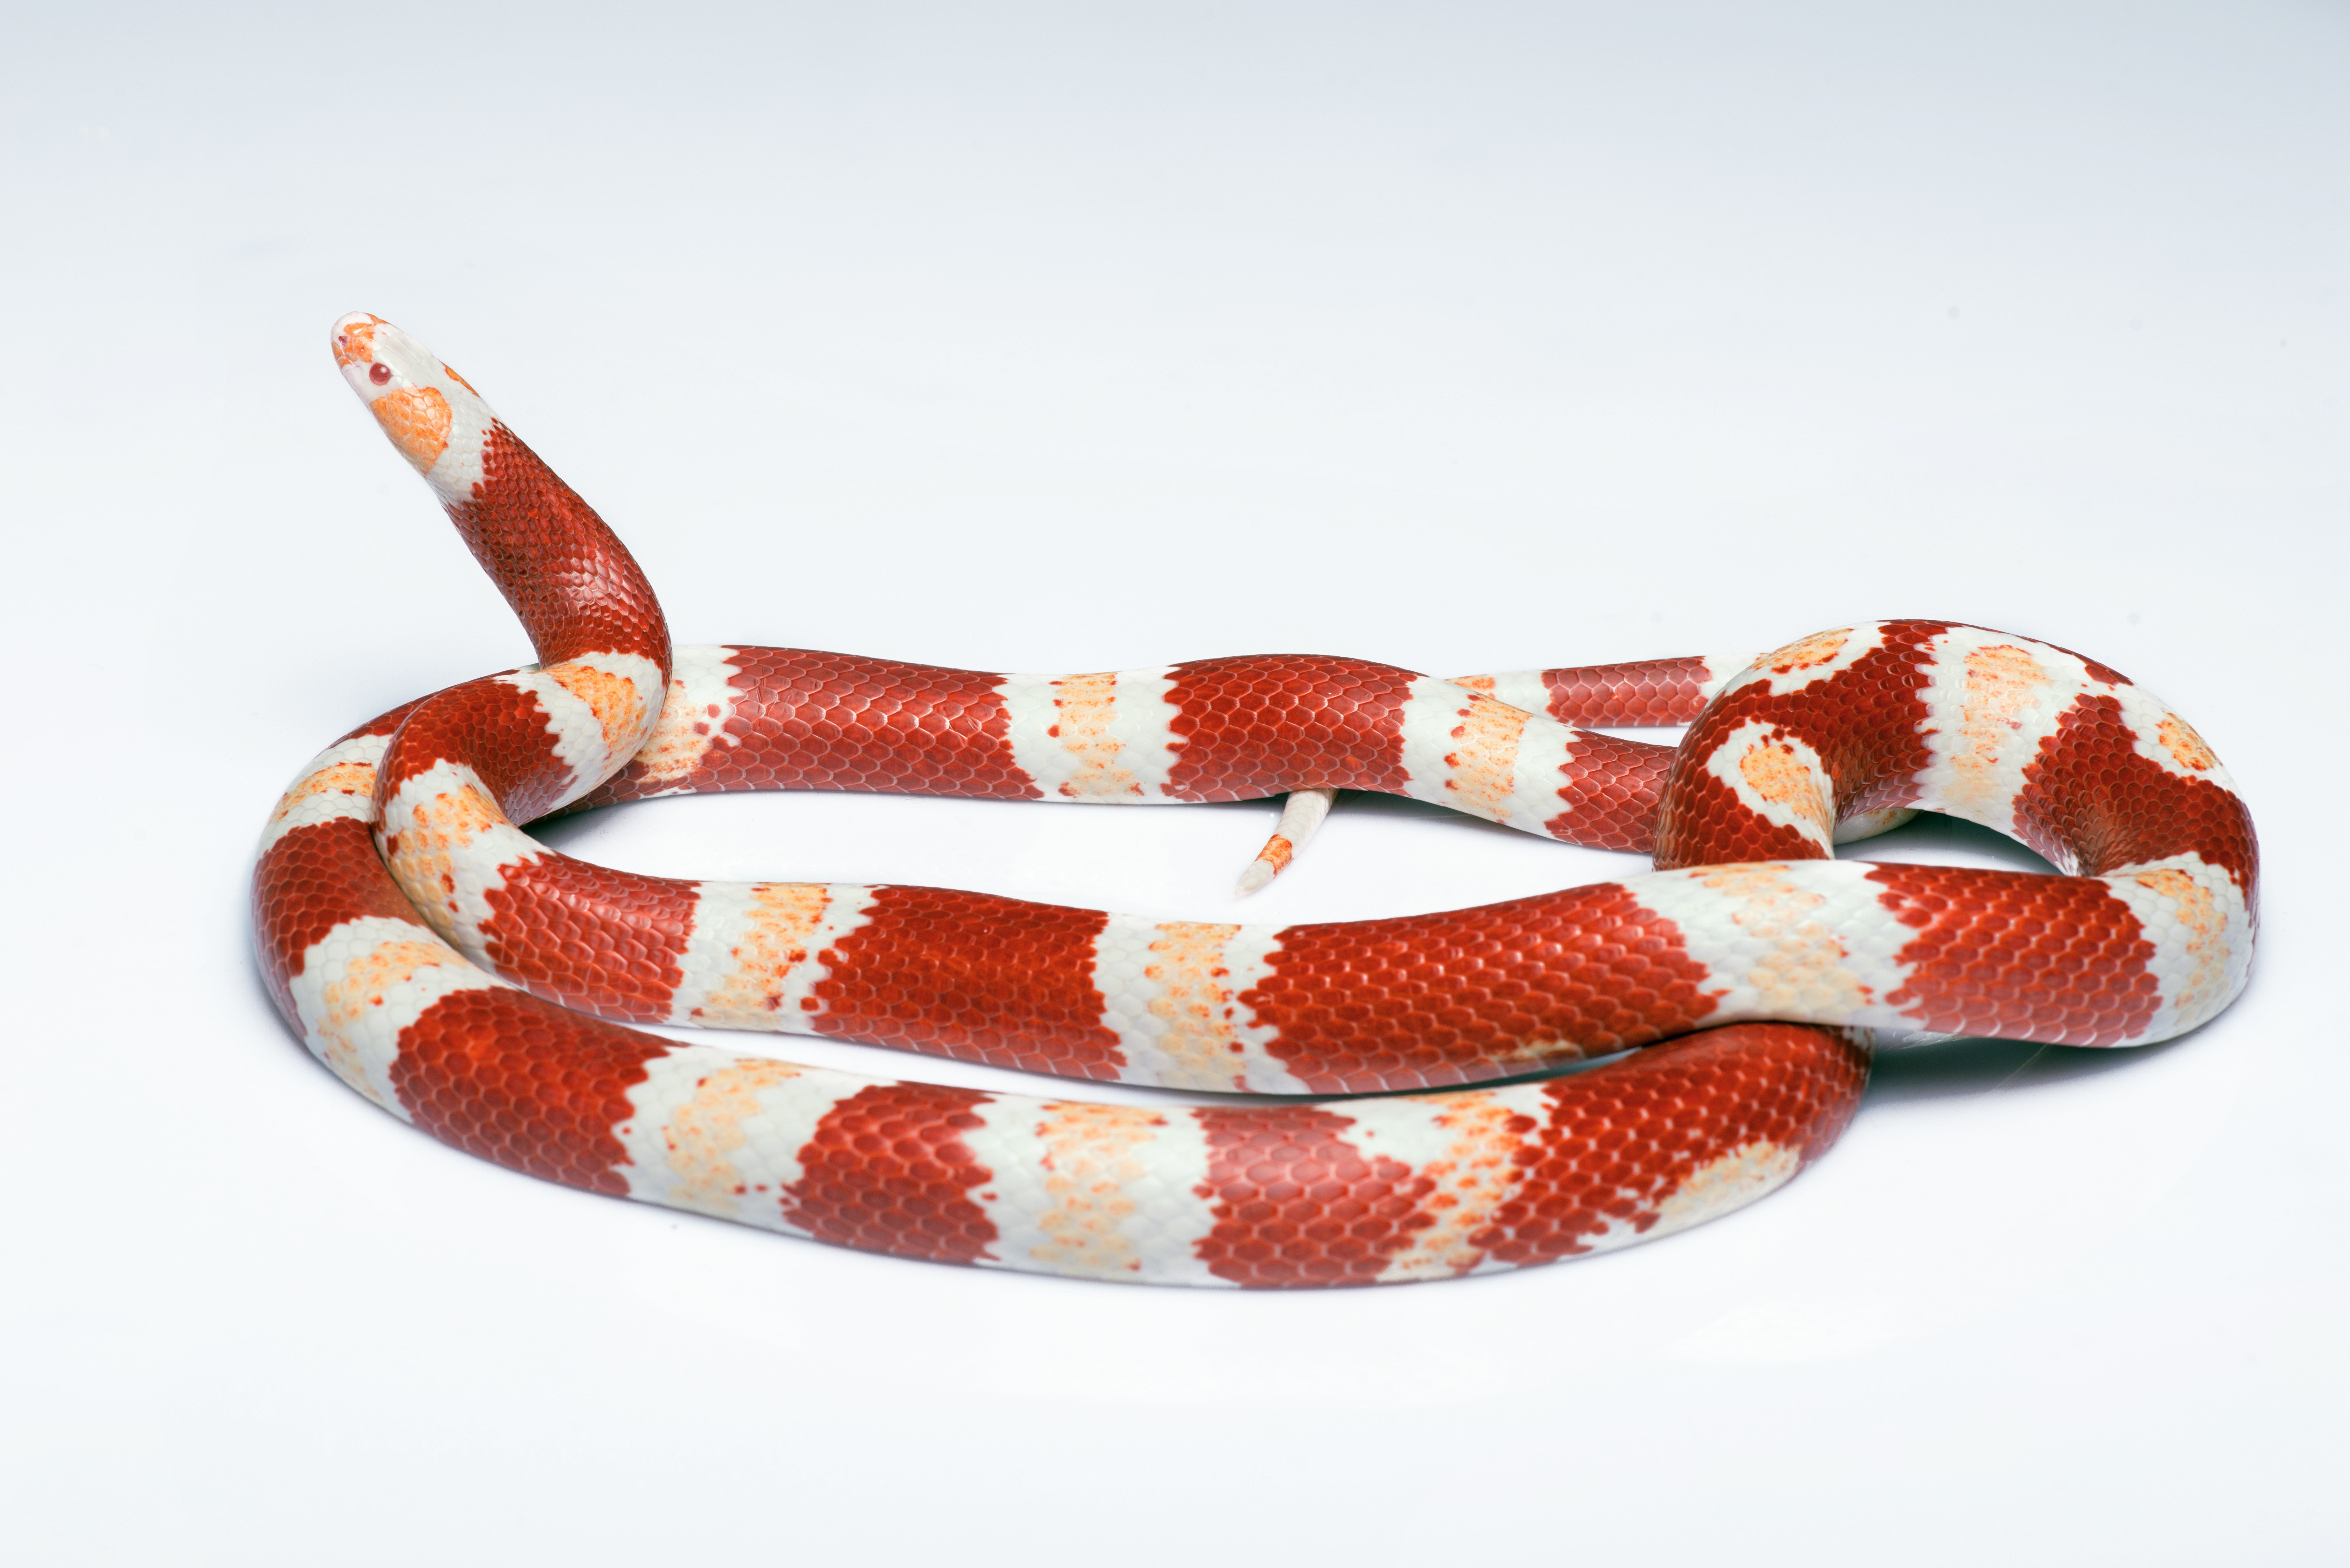 Corn Snake with red and white stripes.